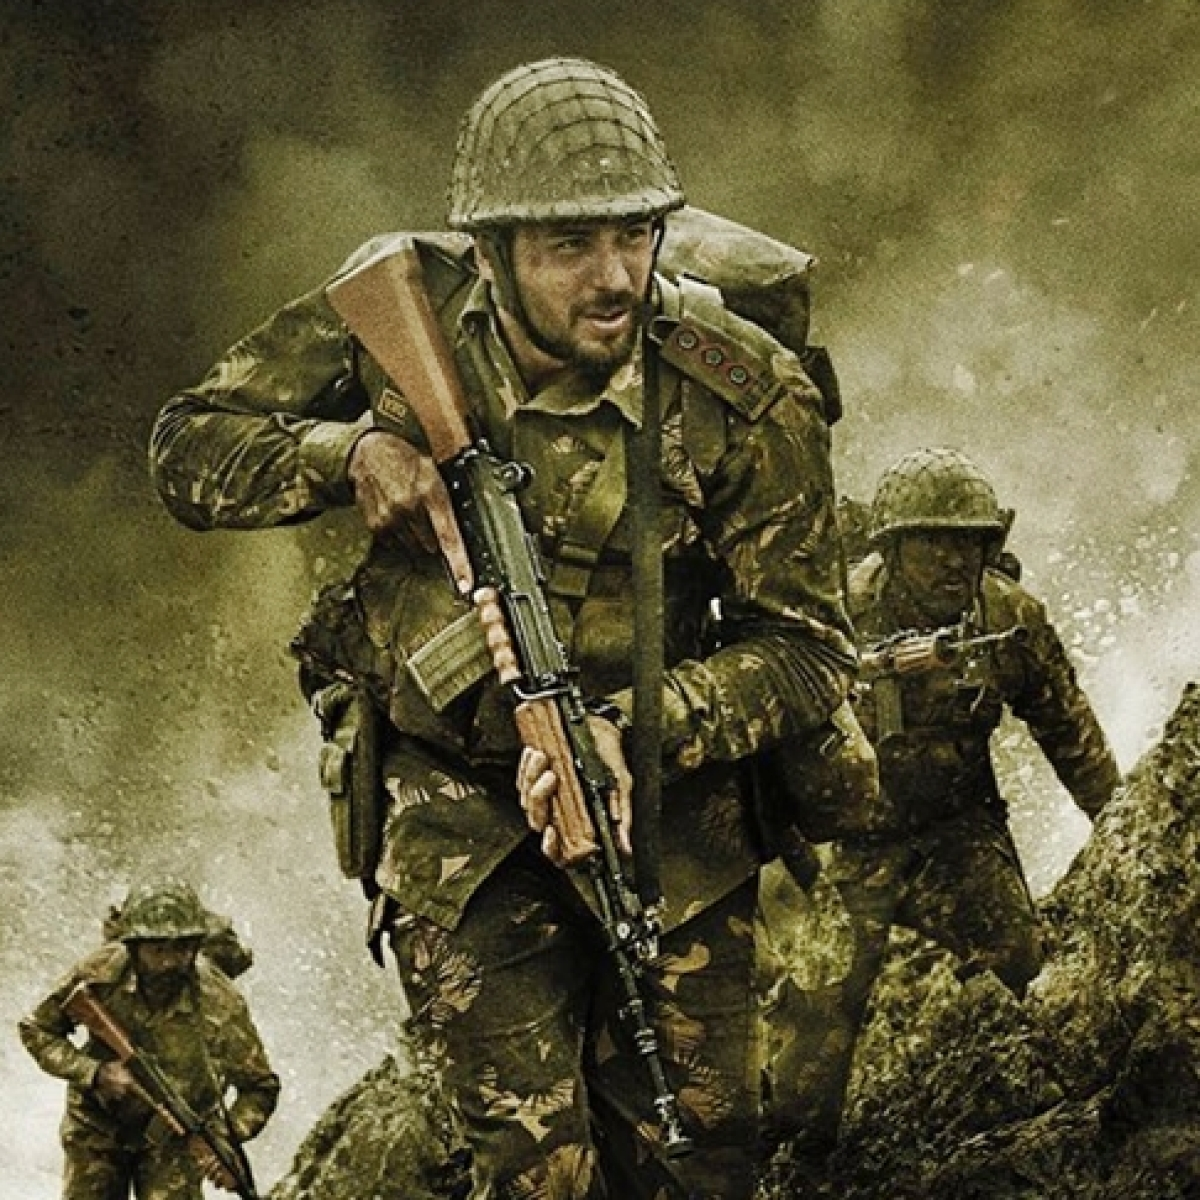 Makers of 'Shershaah' unveil first poster on Sidharth Malhotra's birthday